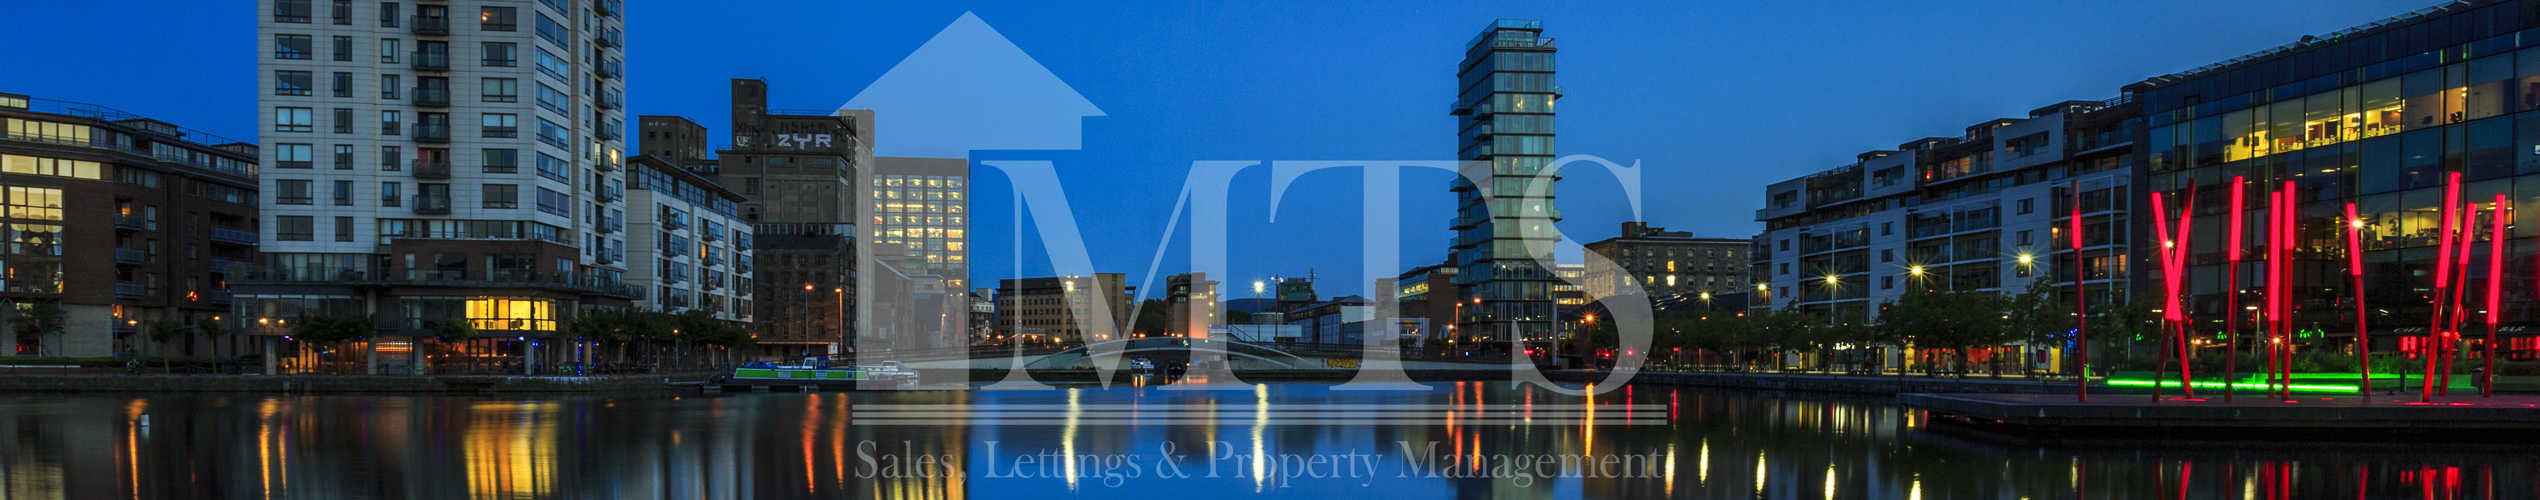 Estate Agents Dublin